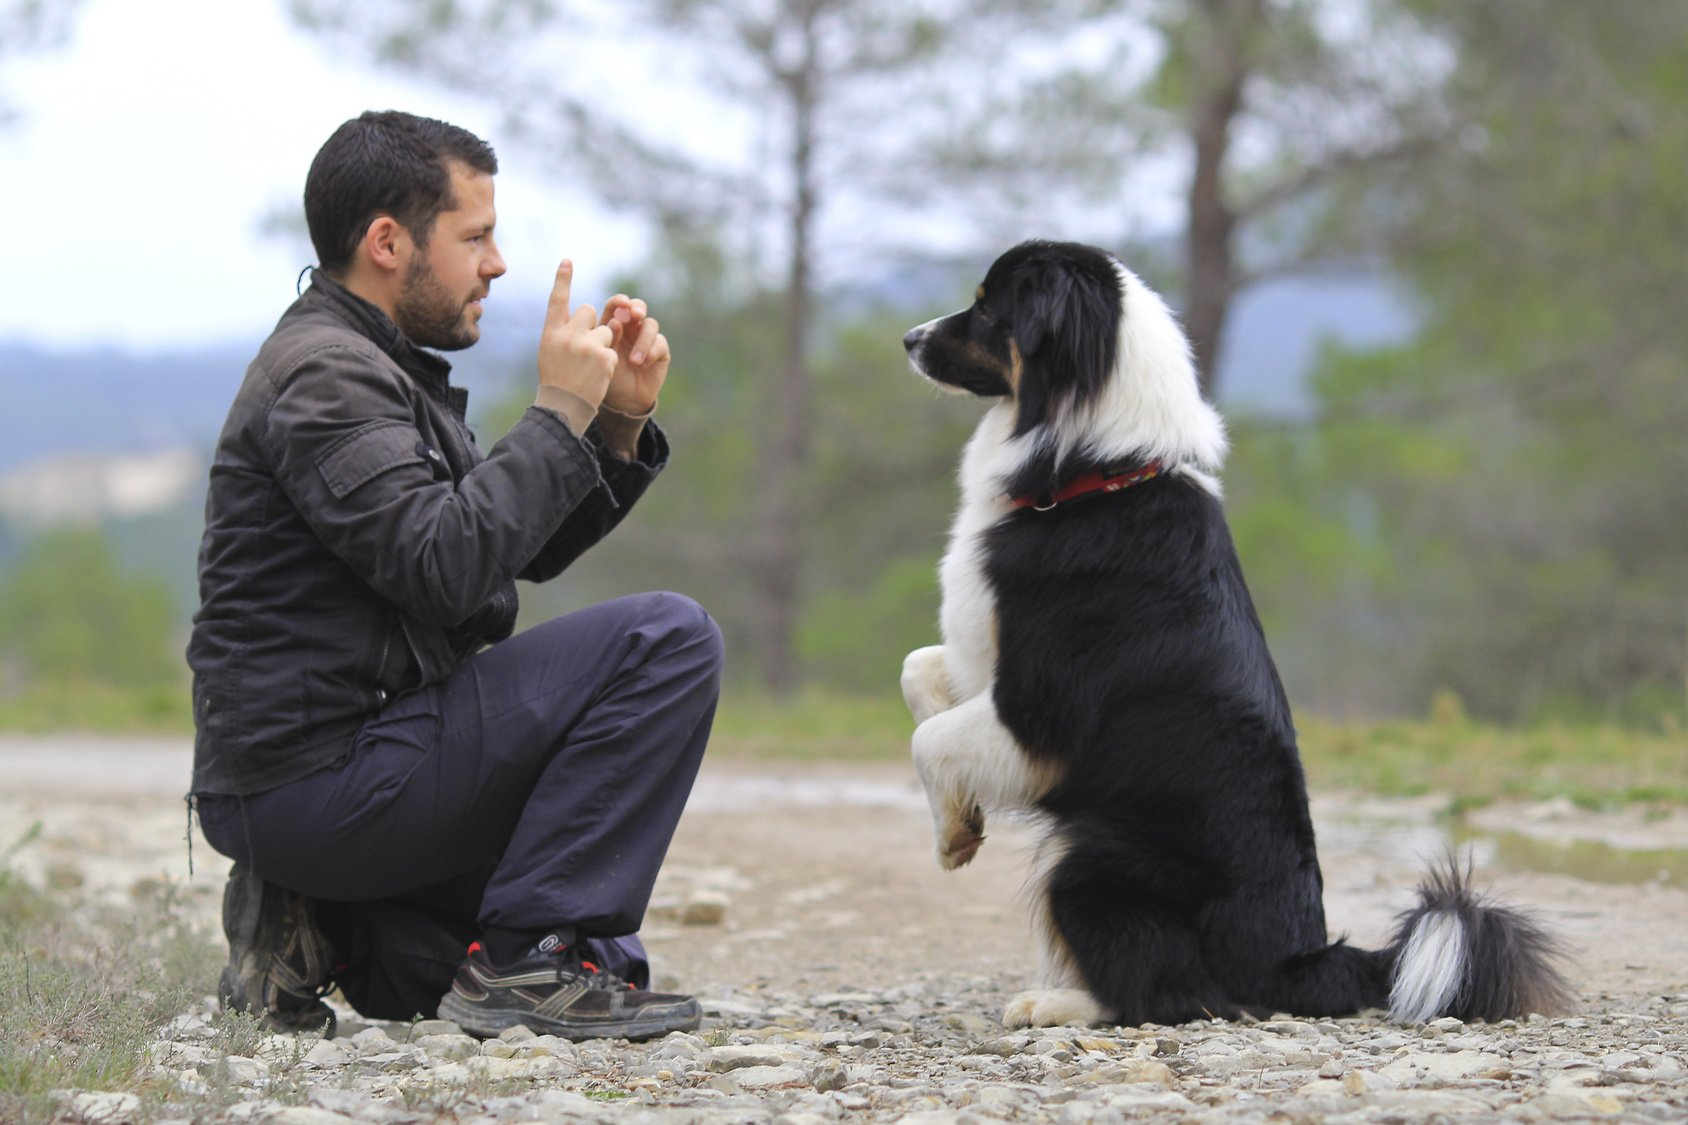 Many dogs show great ability to learn gestures and behaviors.